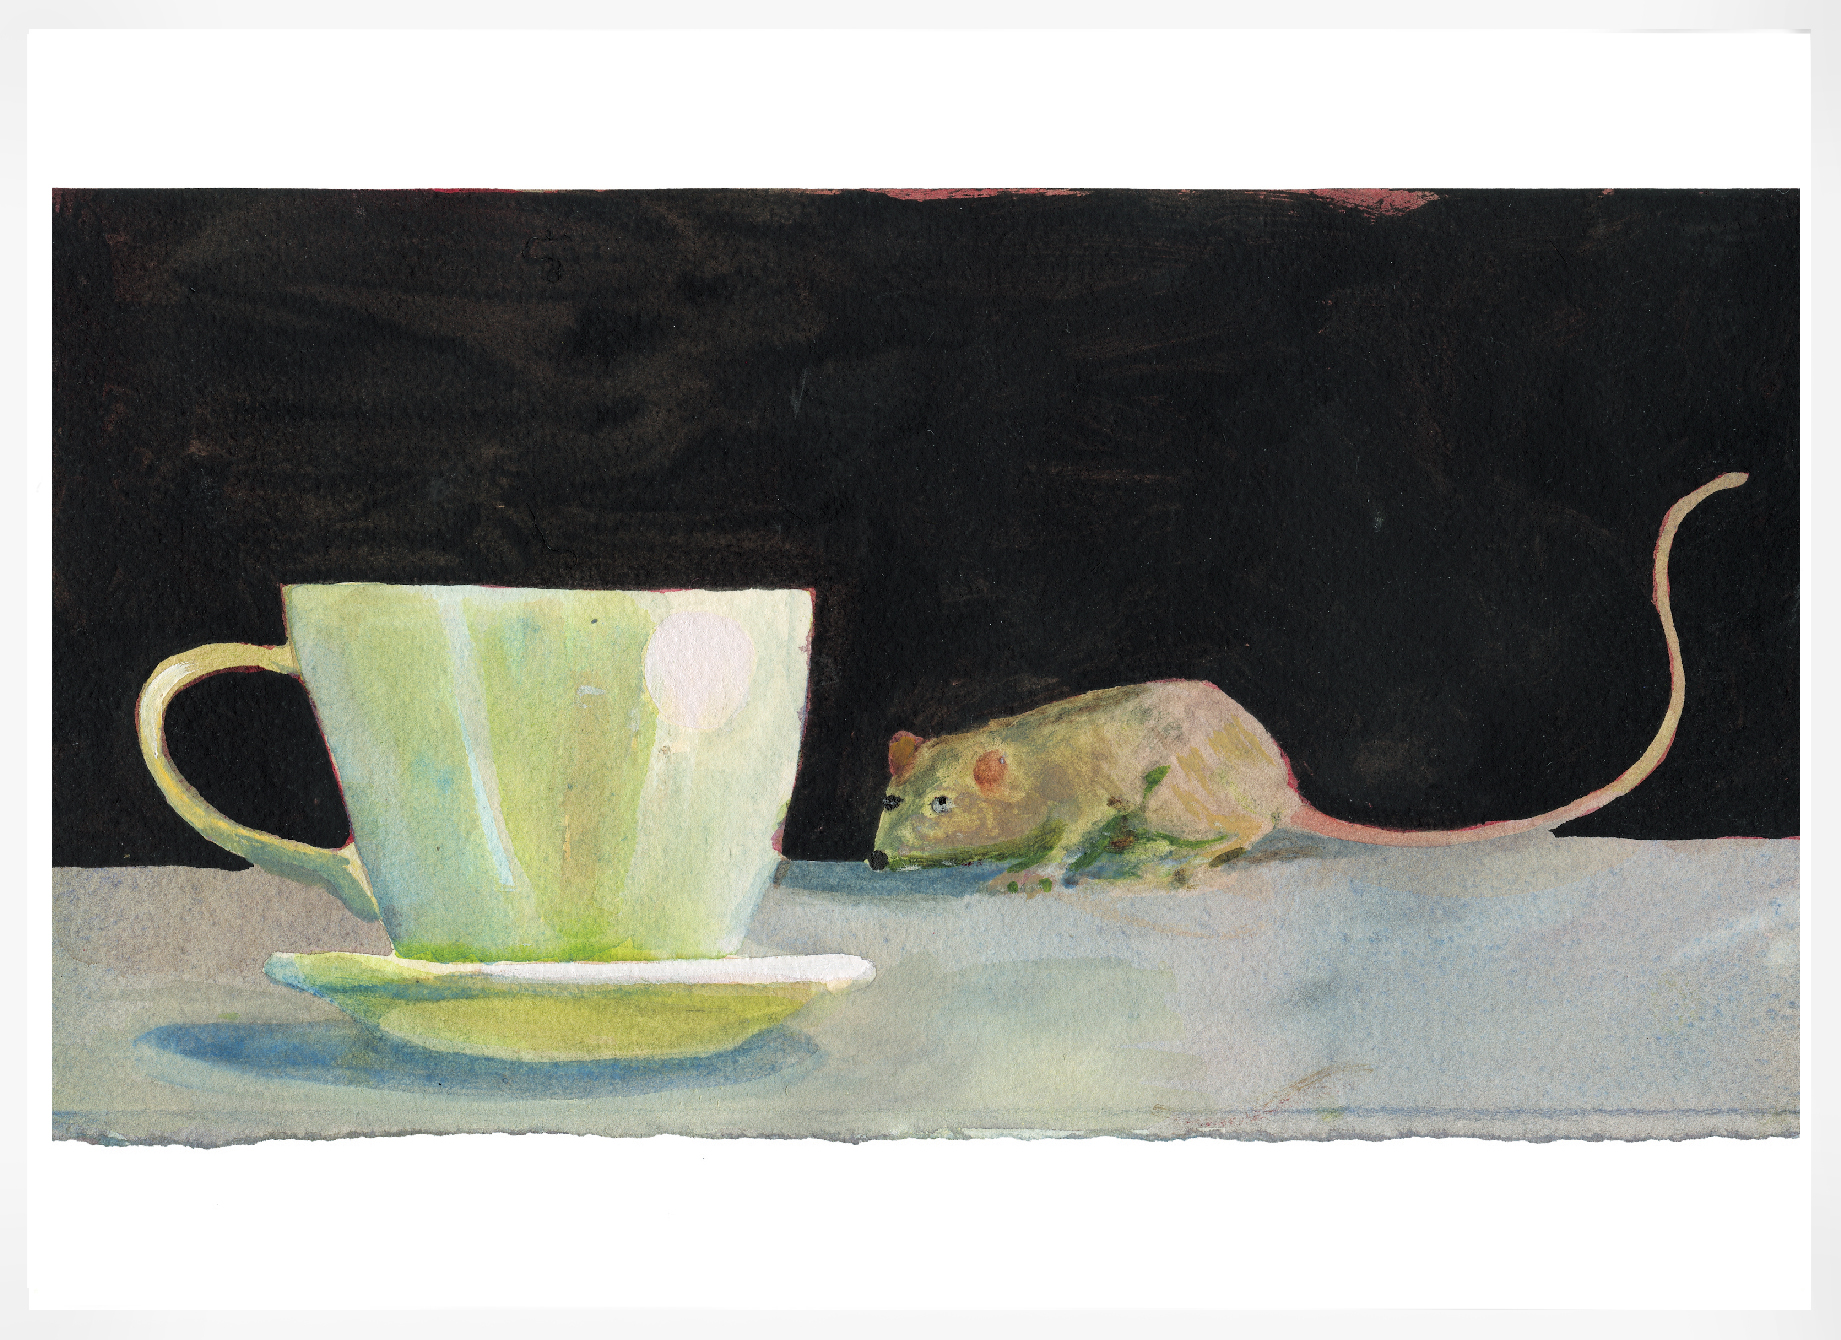 mouse and teacup.jpg